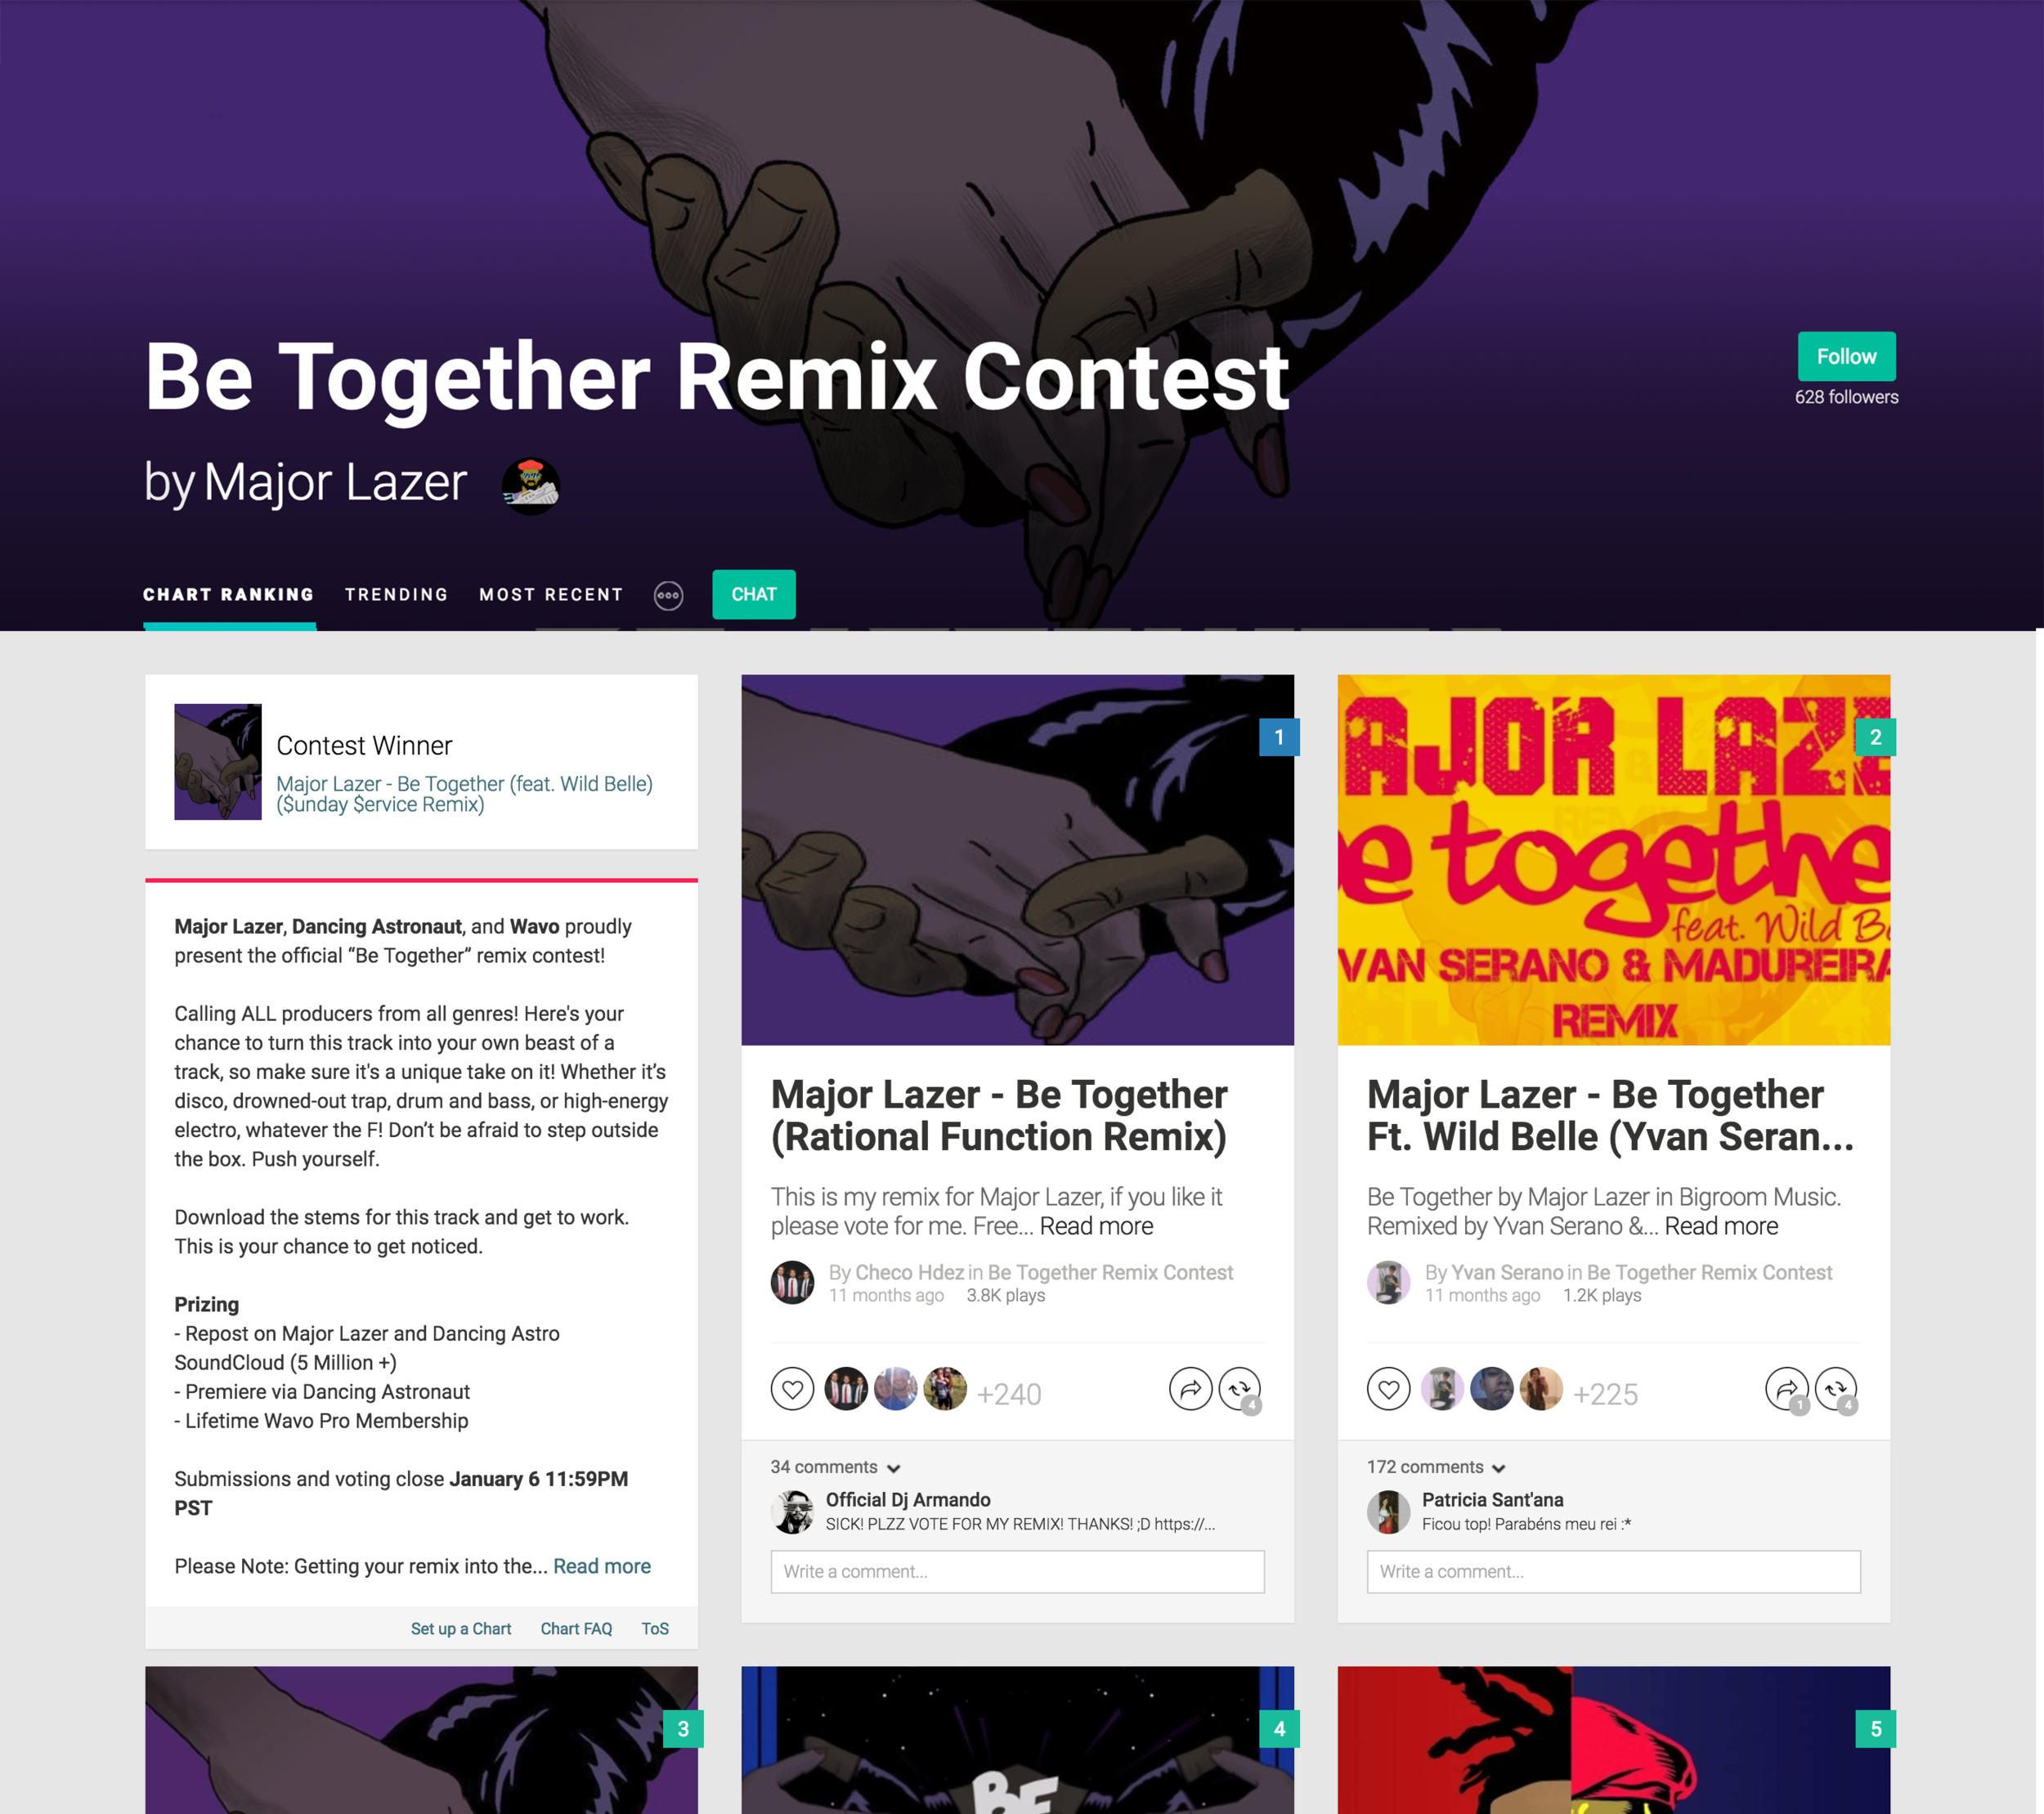 Major Lazer's Be Together Remix Competition hosted on wavo.me